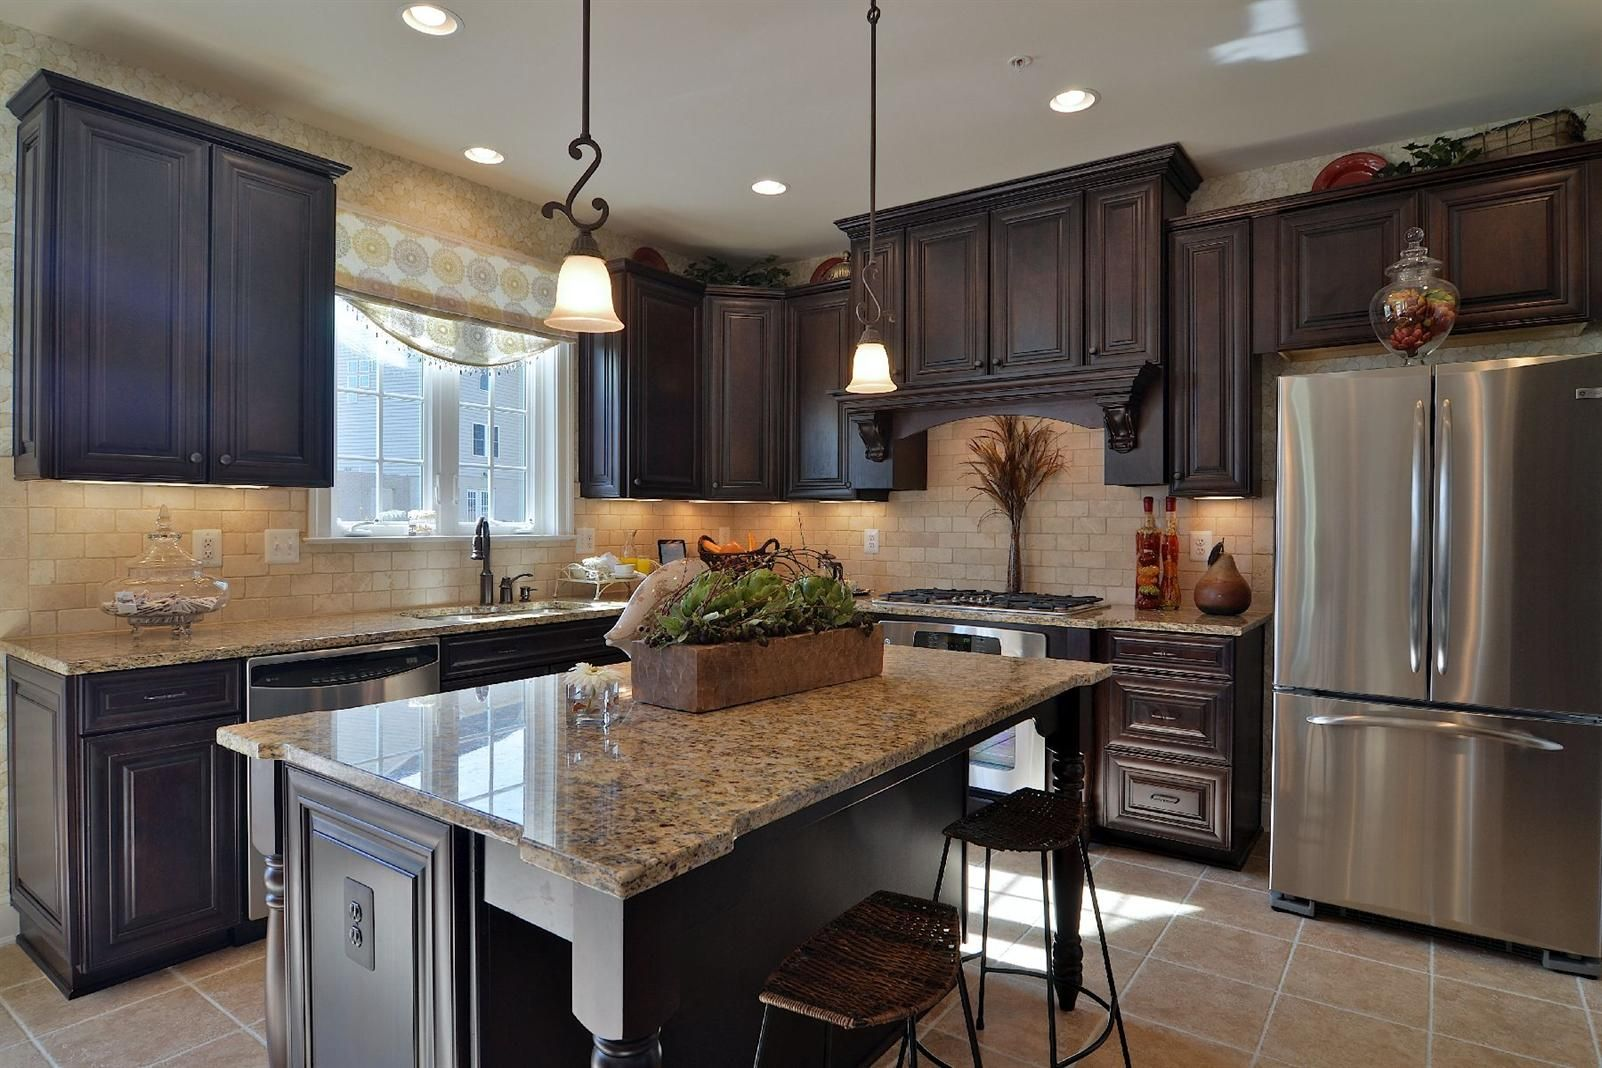 New Luxury Wincopia Farms In North Laurel MD | NVHomes